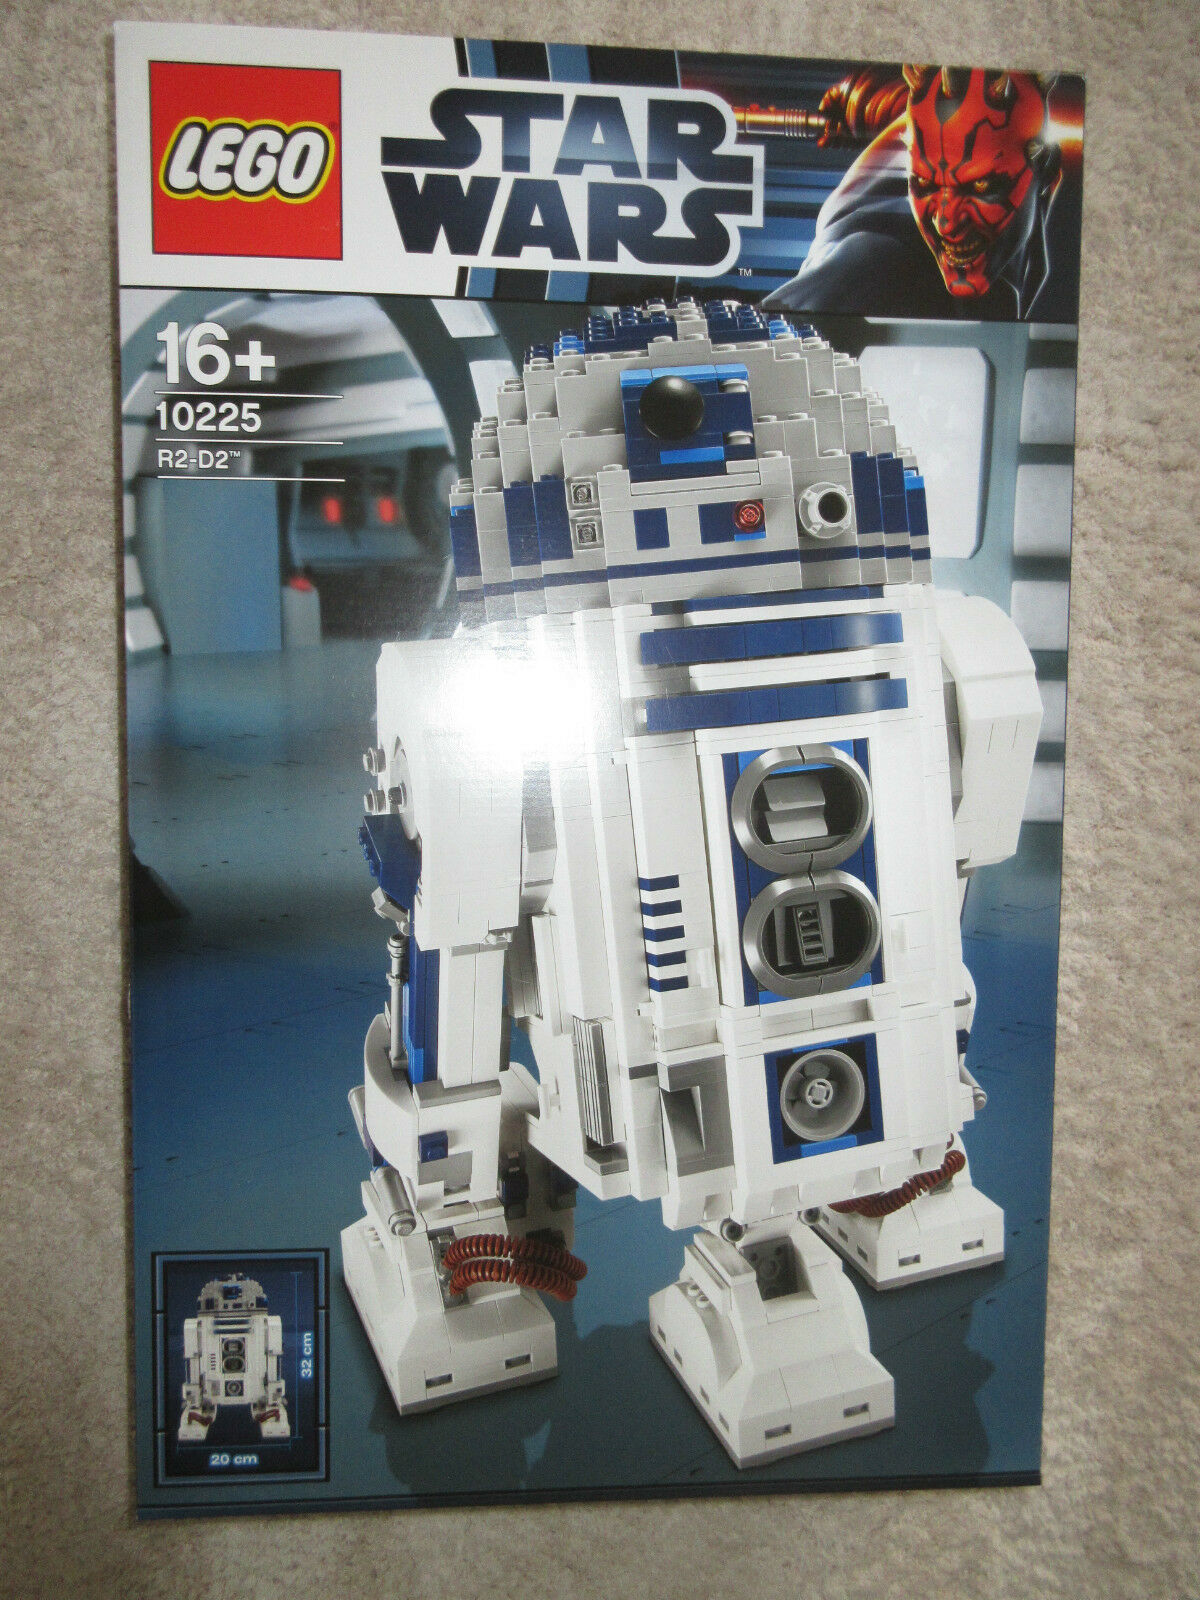 Jouets D2 Box Wars Lego New R2 Neuf In Mib Star Nrvkow3232 10225 Nv0wm8nO